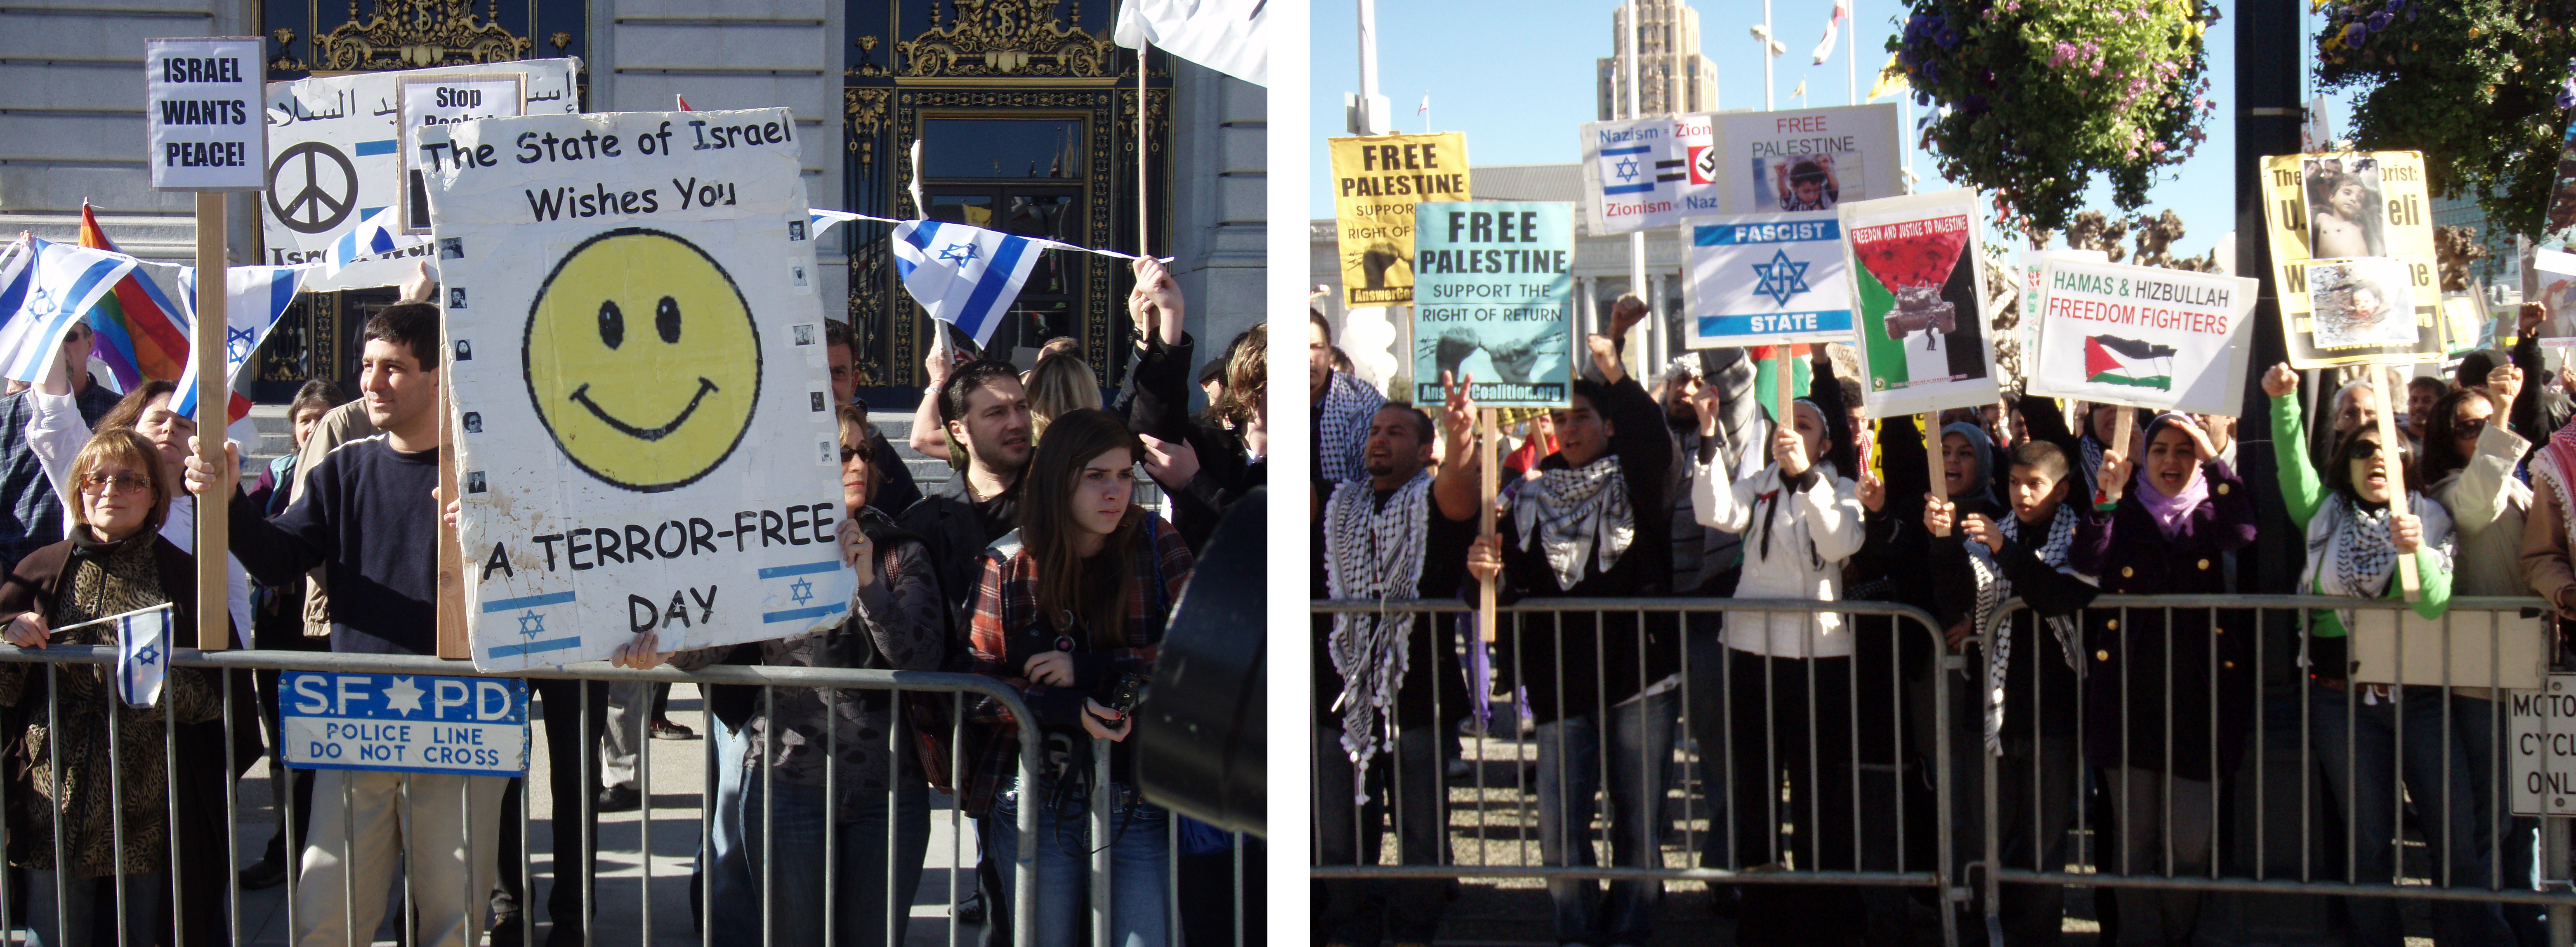 Demonstrations_in_san_francisco_about_hamas_Israel_conflict_1-10-9